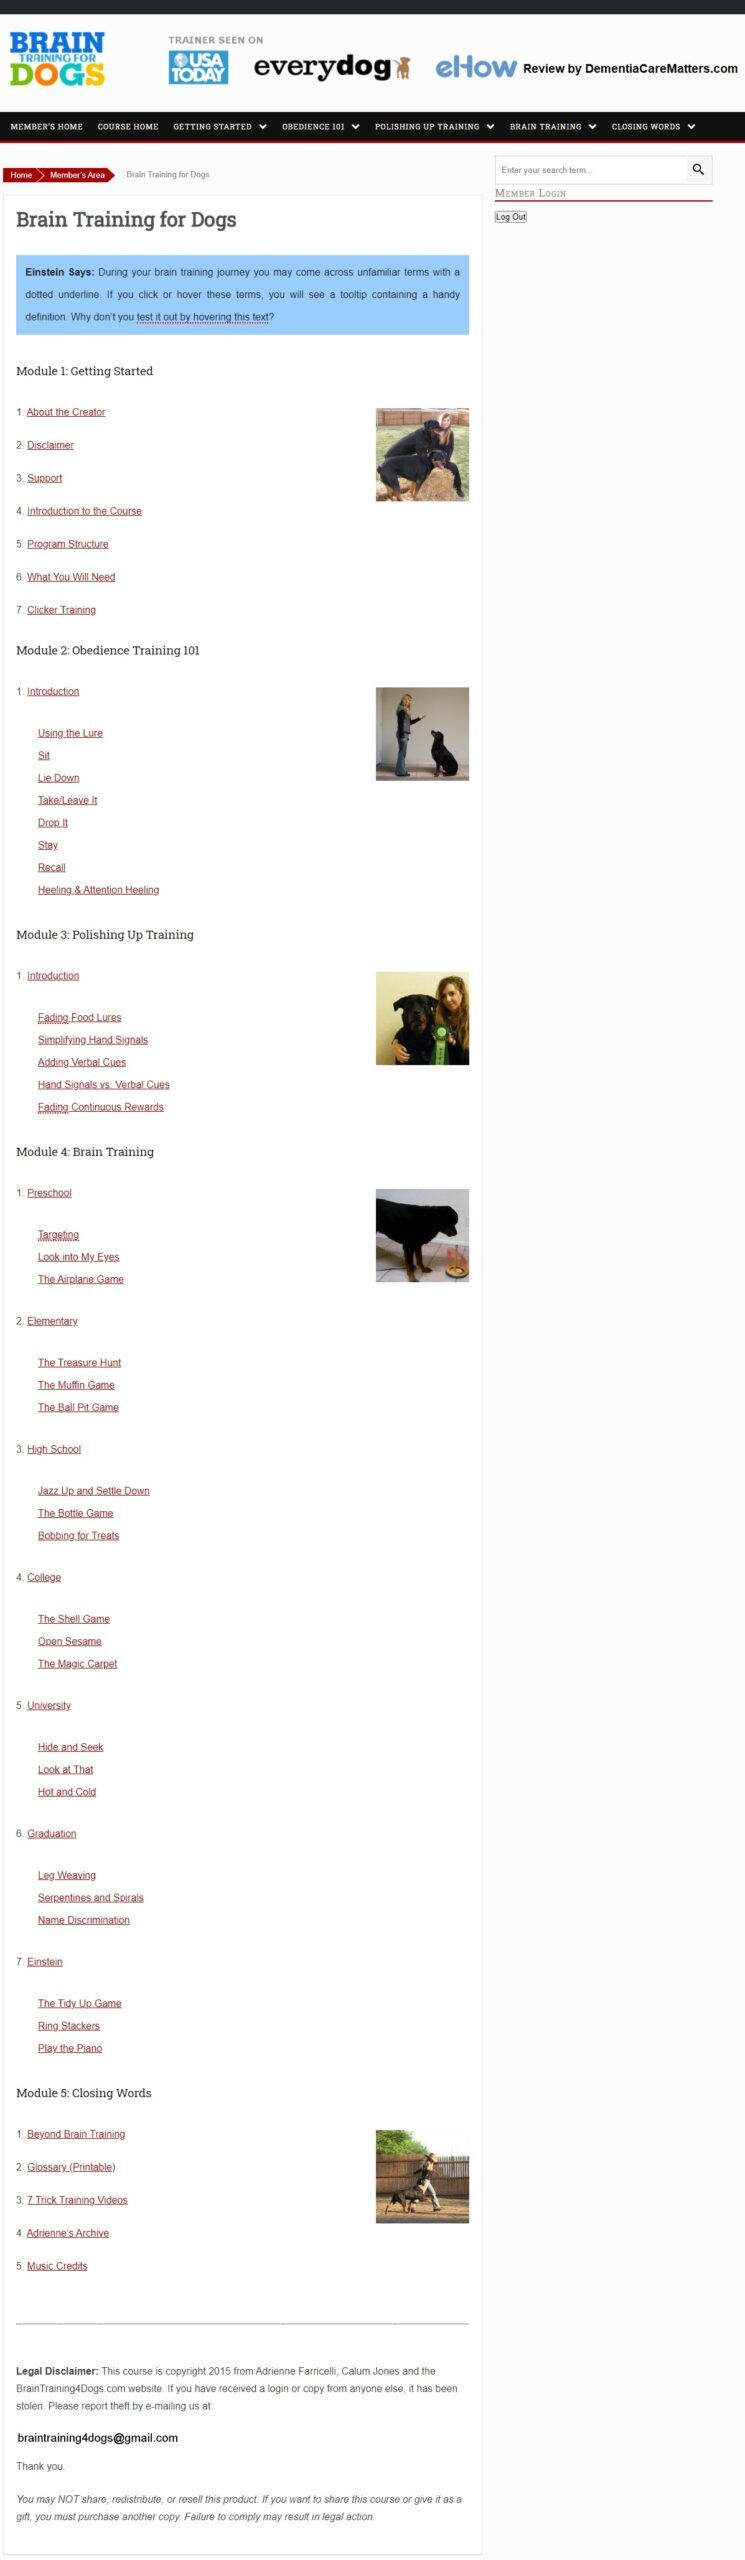 Brain Training for Dogs Download Page